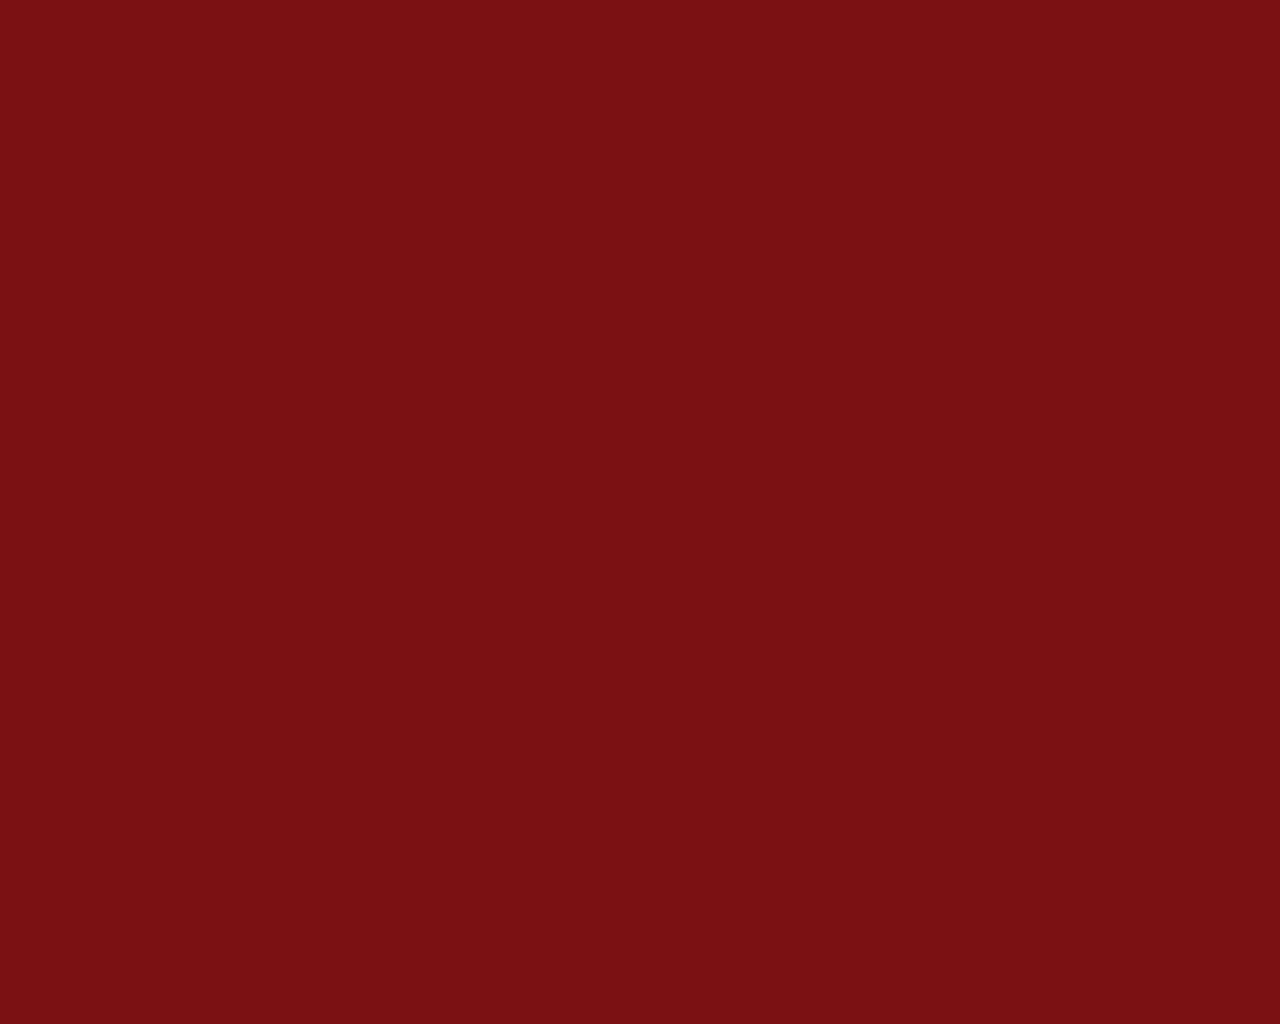 1280x1024 UP Maroon Solid Color Background